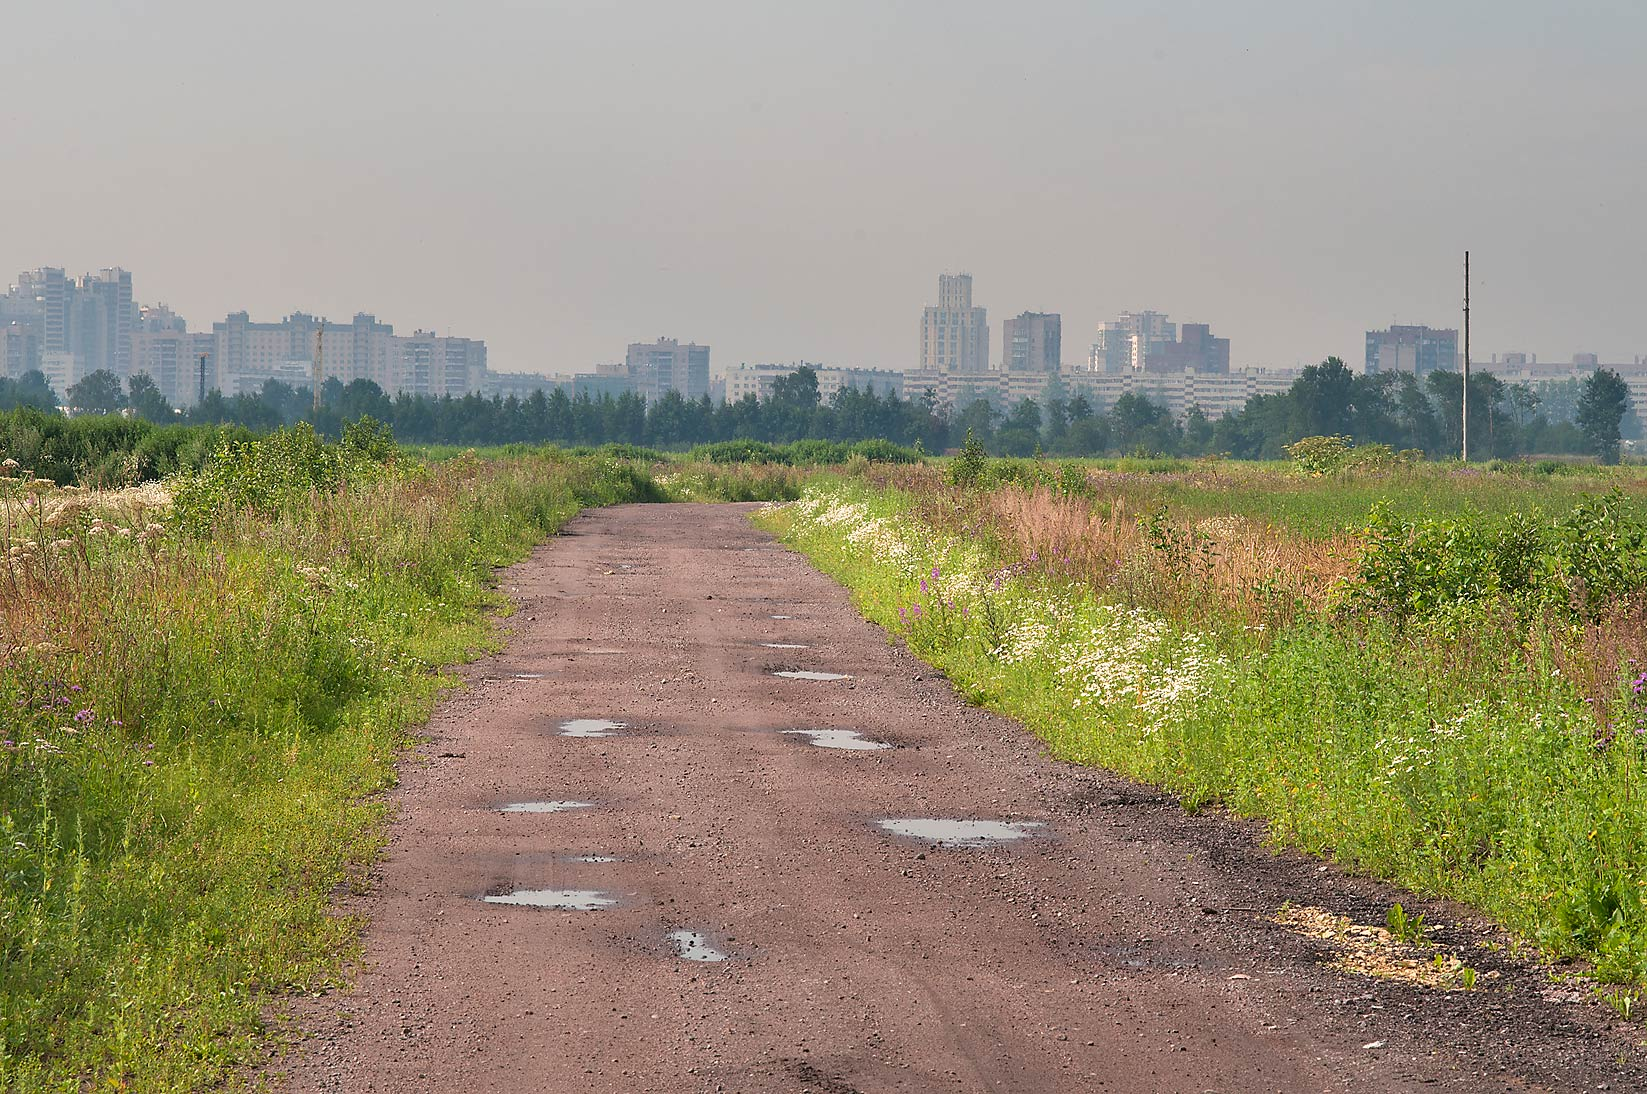 Field road in the area of former black markets...mile north from St.Petersburg. Russia